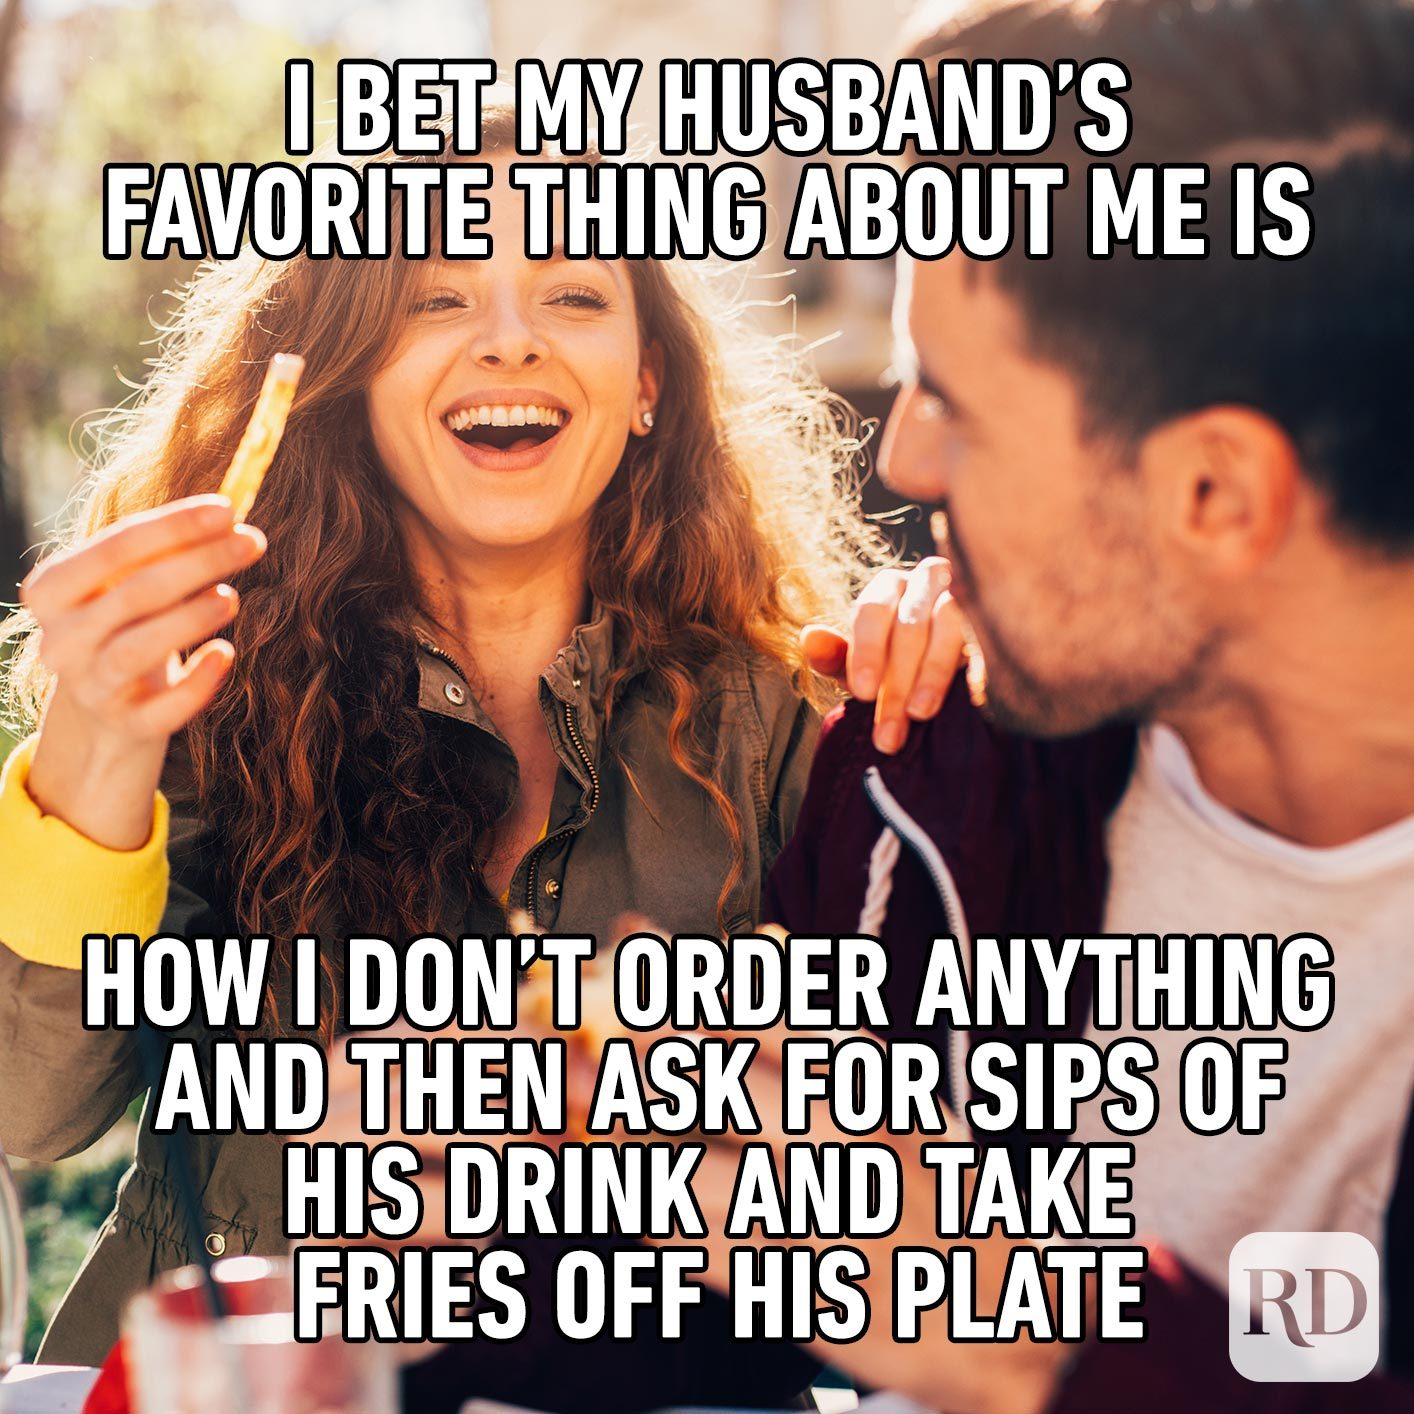 Picture of woman stealing a fry from her husband. Meme text: I bet my husband's favorite thing about me is how I don't order anything and then ask for sips of his drink and take fries off his plate